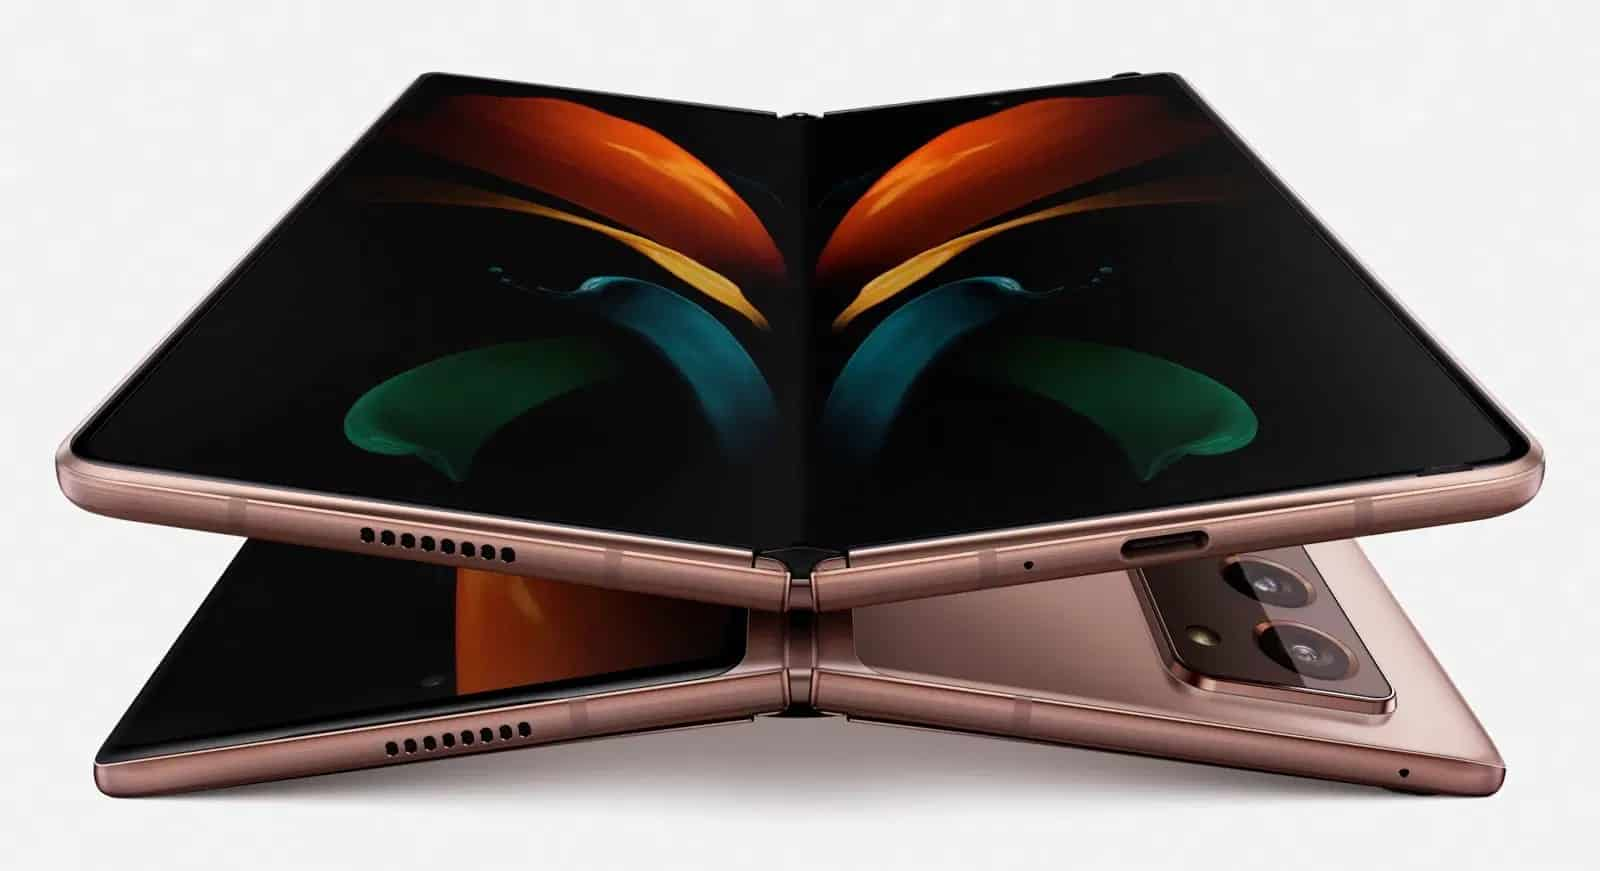 Samsung Galaxy Z Fold 3: What We Need To Know?